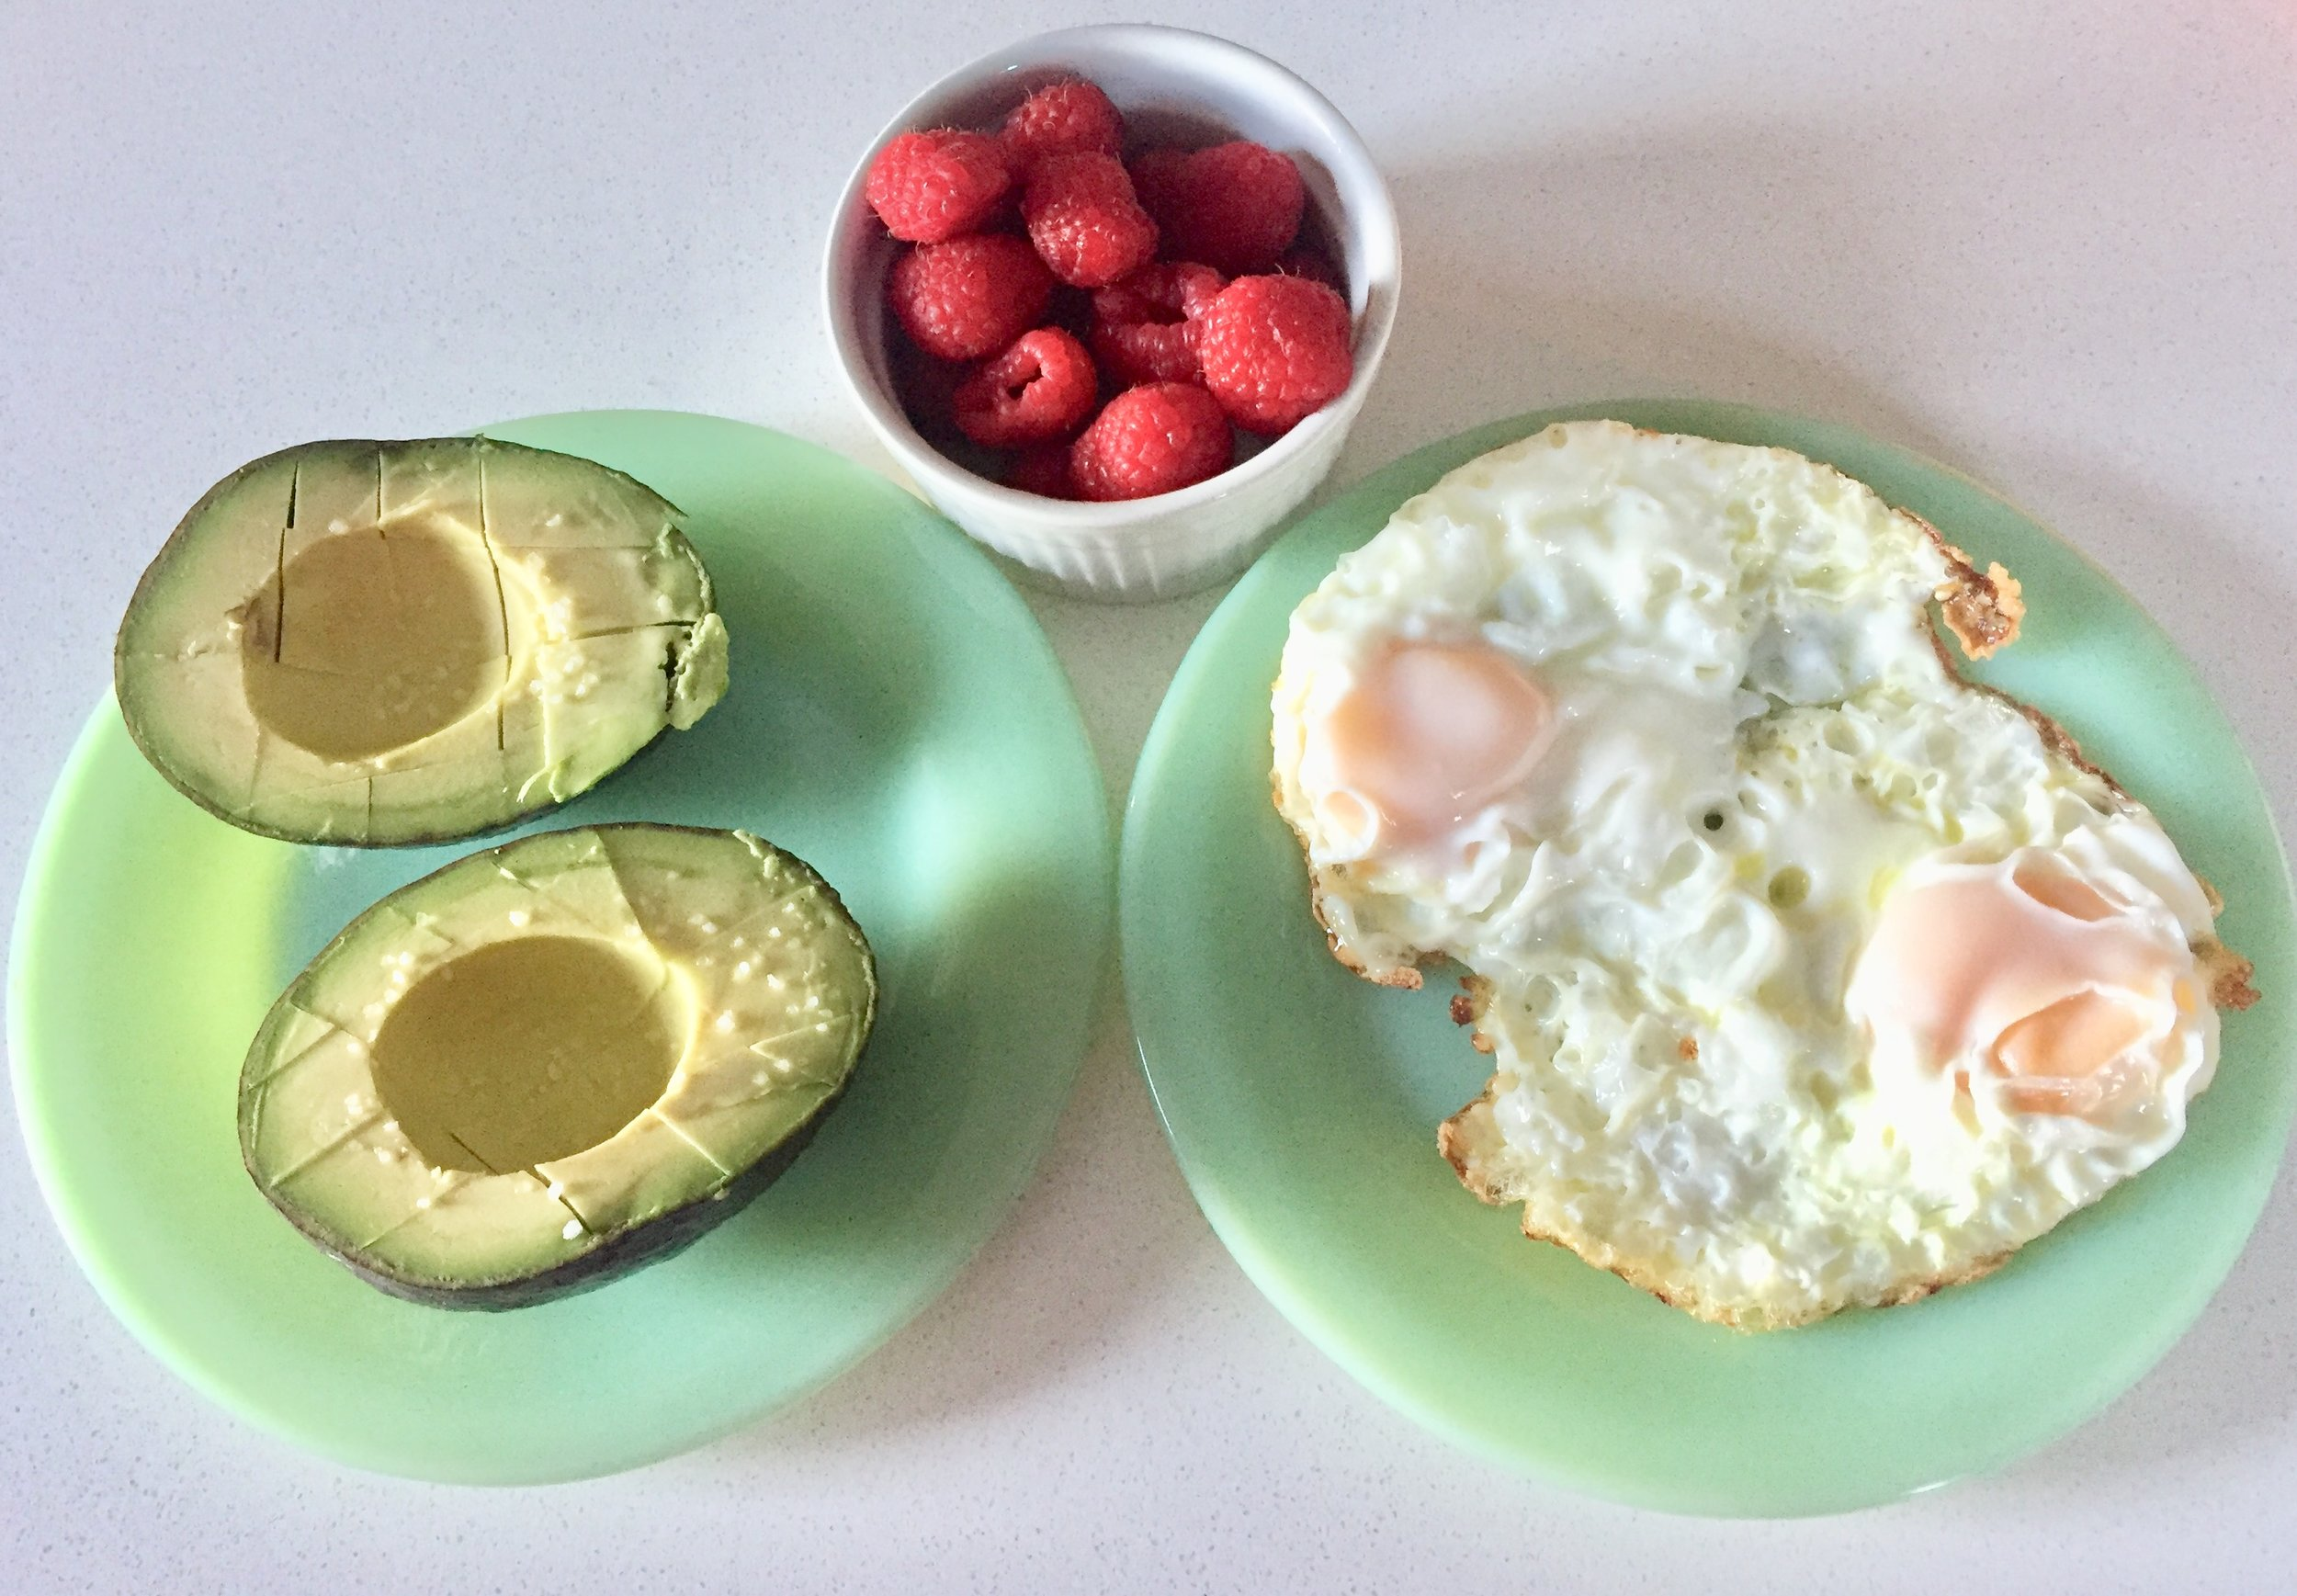 Avocado, raspberries and eggs.